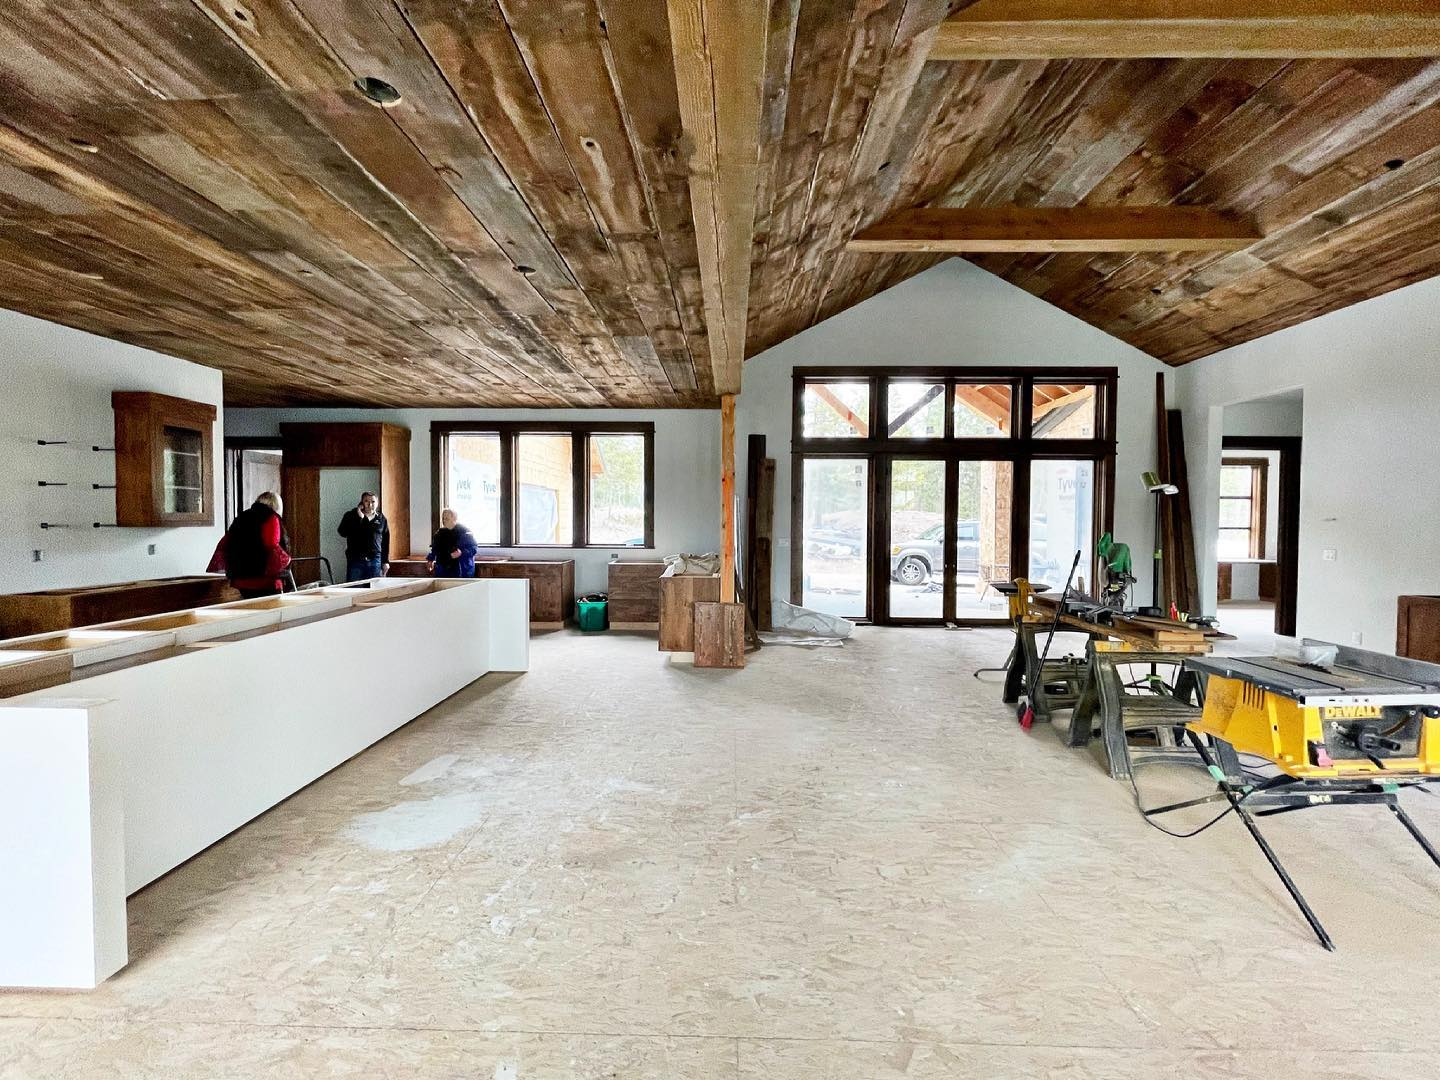 Joe has been working all week to get this barn wood up...it covers the kitchen, dining, and great room, and follows the hallway to the bedroom and mudrooms. It looks amazing! @oldmontanabuilding whitefish custom home builder